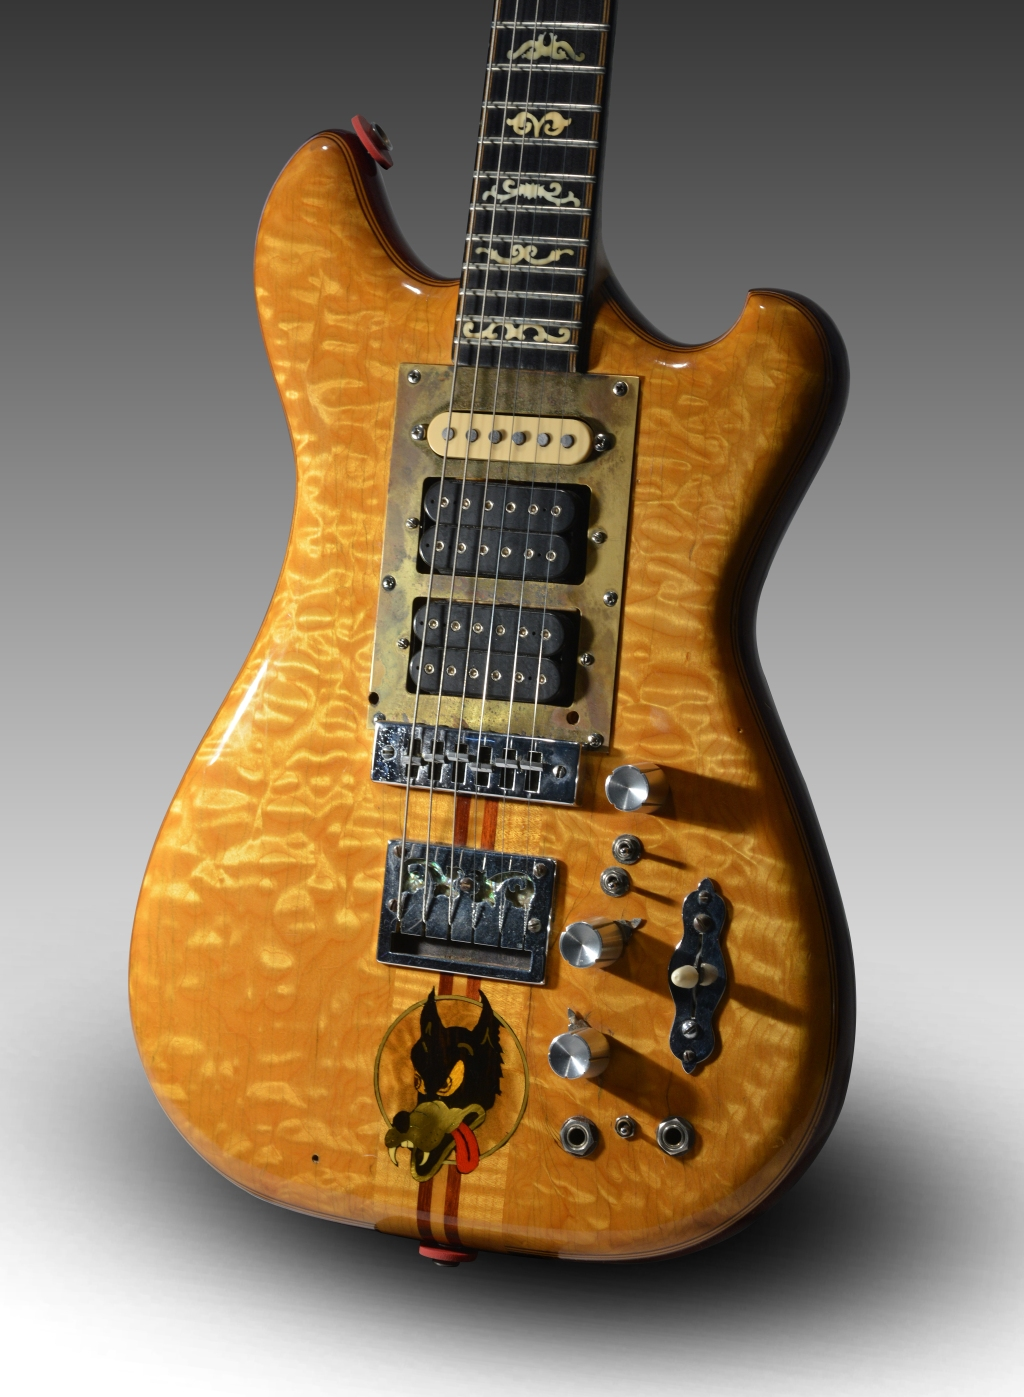 """Eager to take his guitar into the outer limits, Jerry Garcia had luthier Doug Irwin build this """"Wolf"""" guitar for him in 1972. Made of quilted and flamed maple, among other elements, it became Garcia's principal guitar between 1973 and 1979. Wolf was the first Garcia guitar that allowed him to experiment with MIDI (Musical Instrument Digital Interface), allowing him to make his guitar sound like other instruments."""